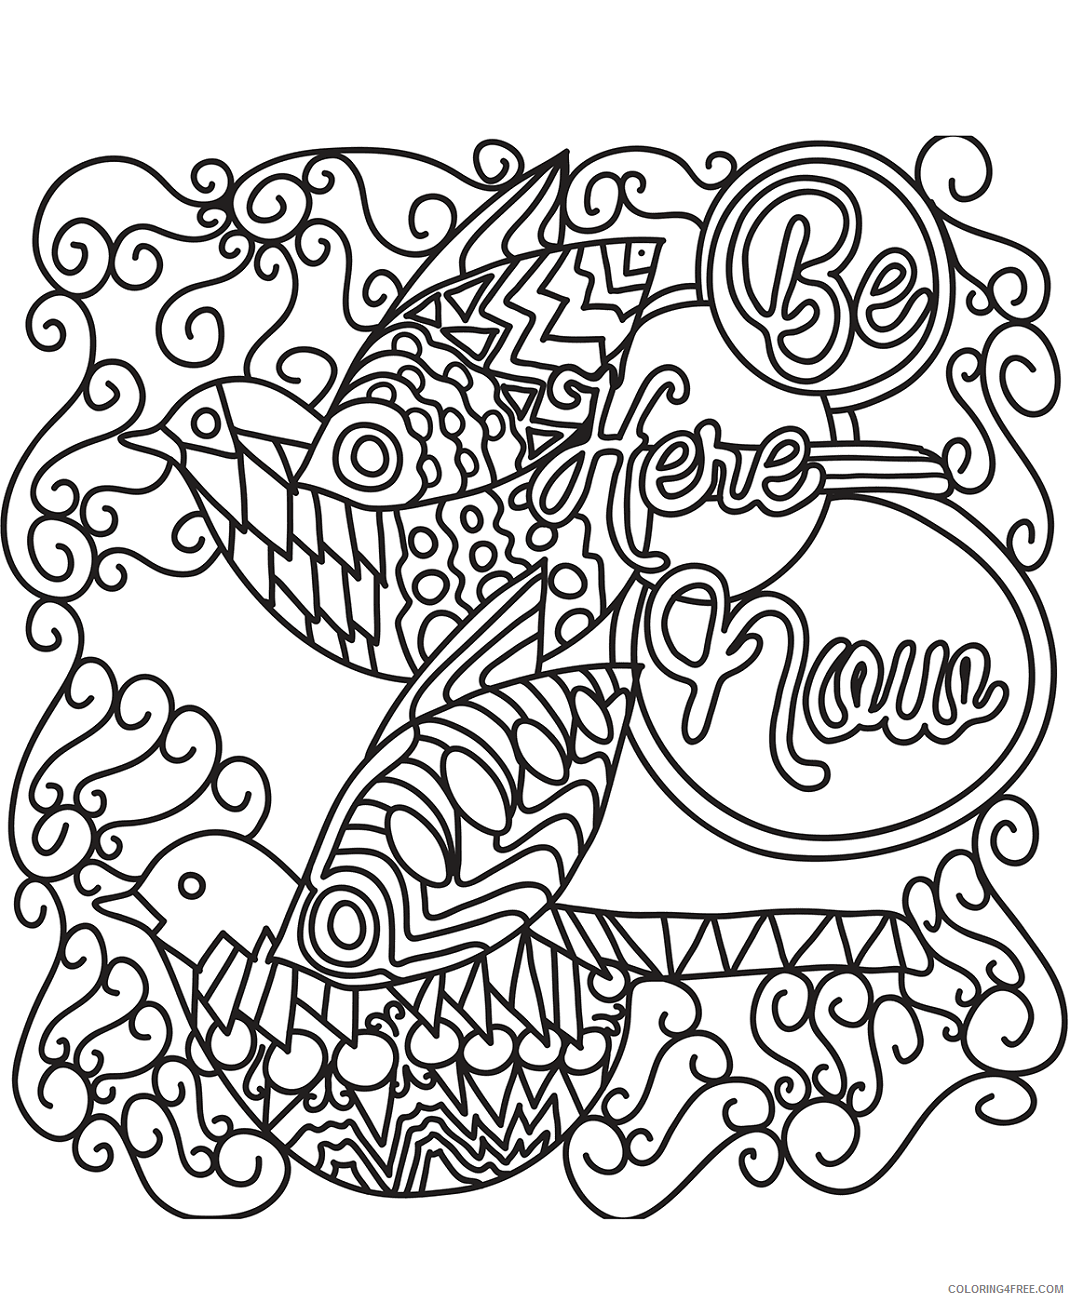 Doodle Coloring Pages Adult birds_doodle_art a4 Printable 2020 317 Coloring4free